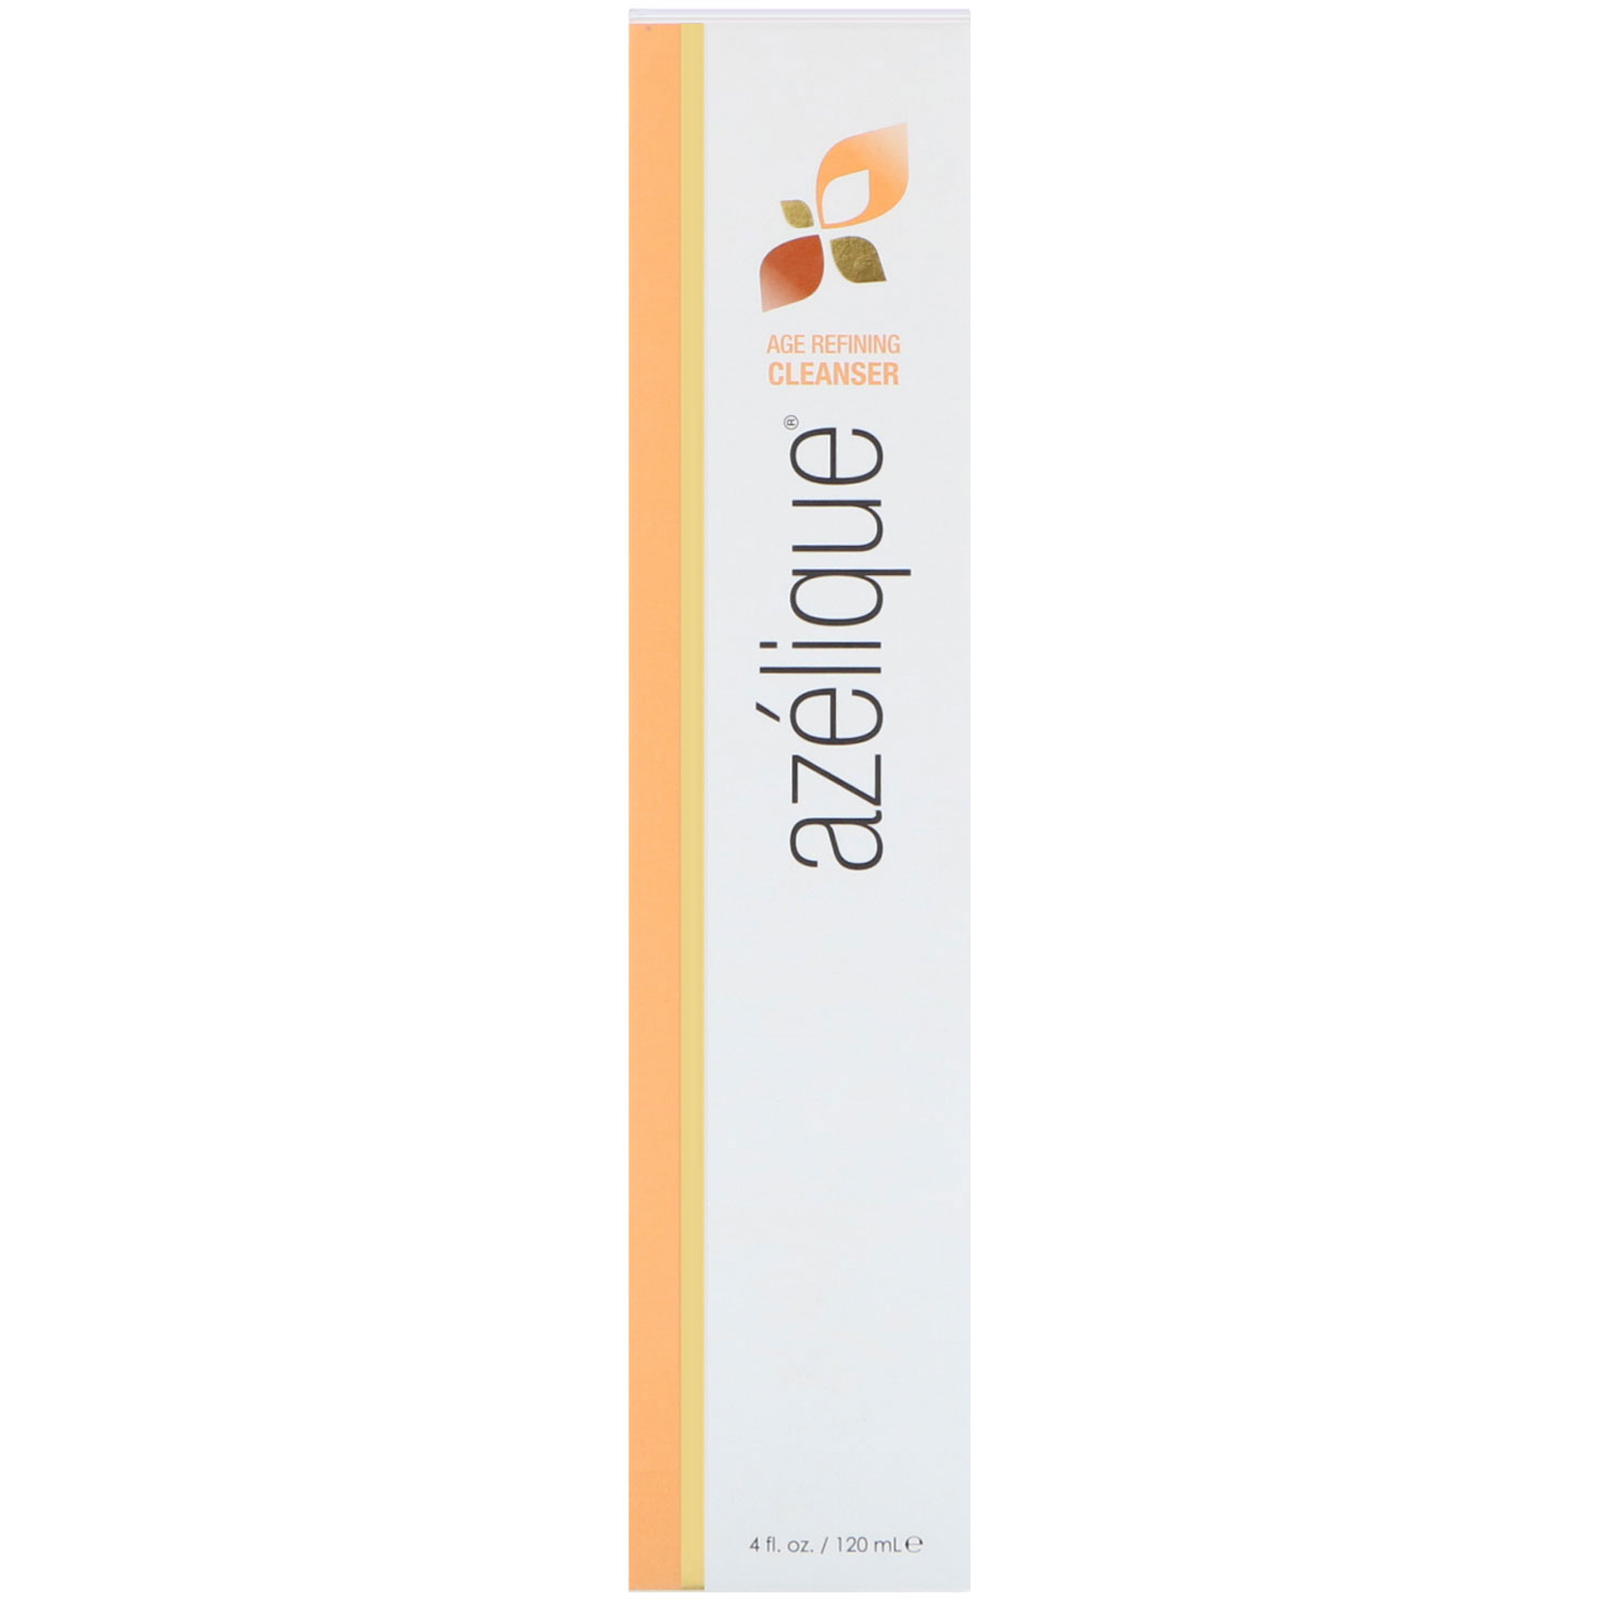 Azelique, Age Refining Cleanser, Soap-Free, Botanical Ingredients